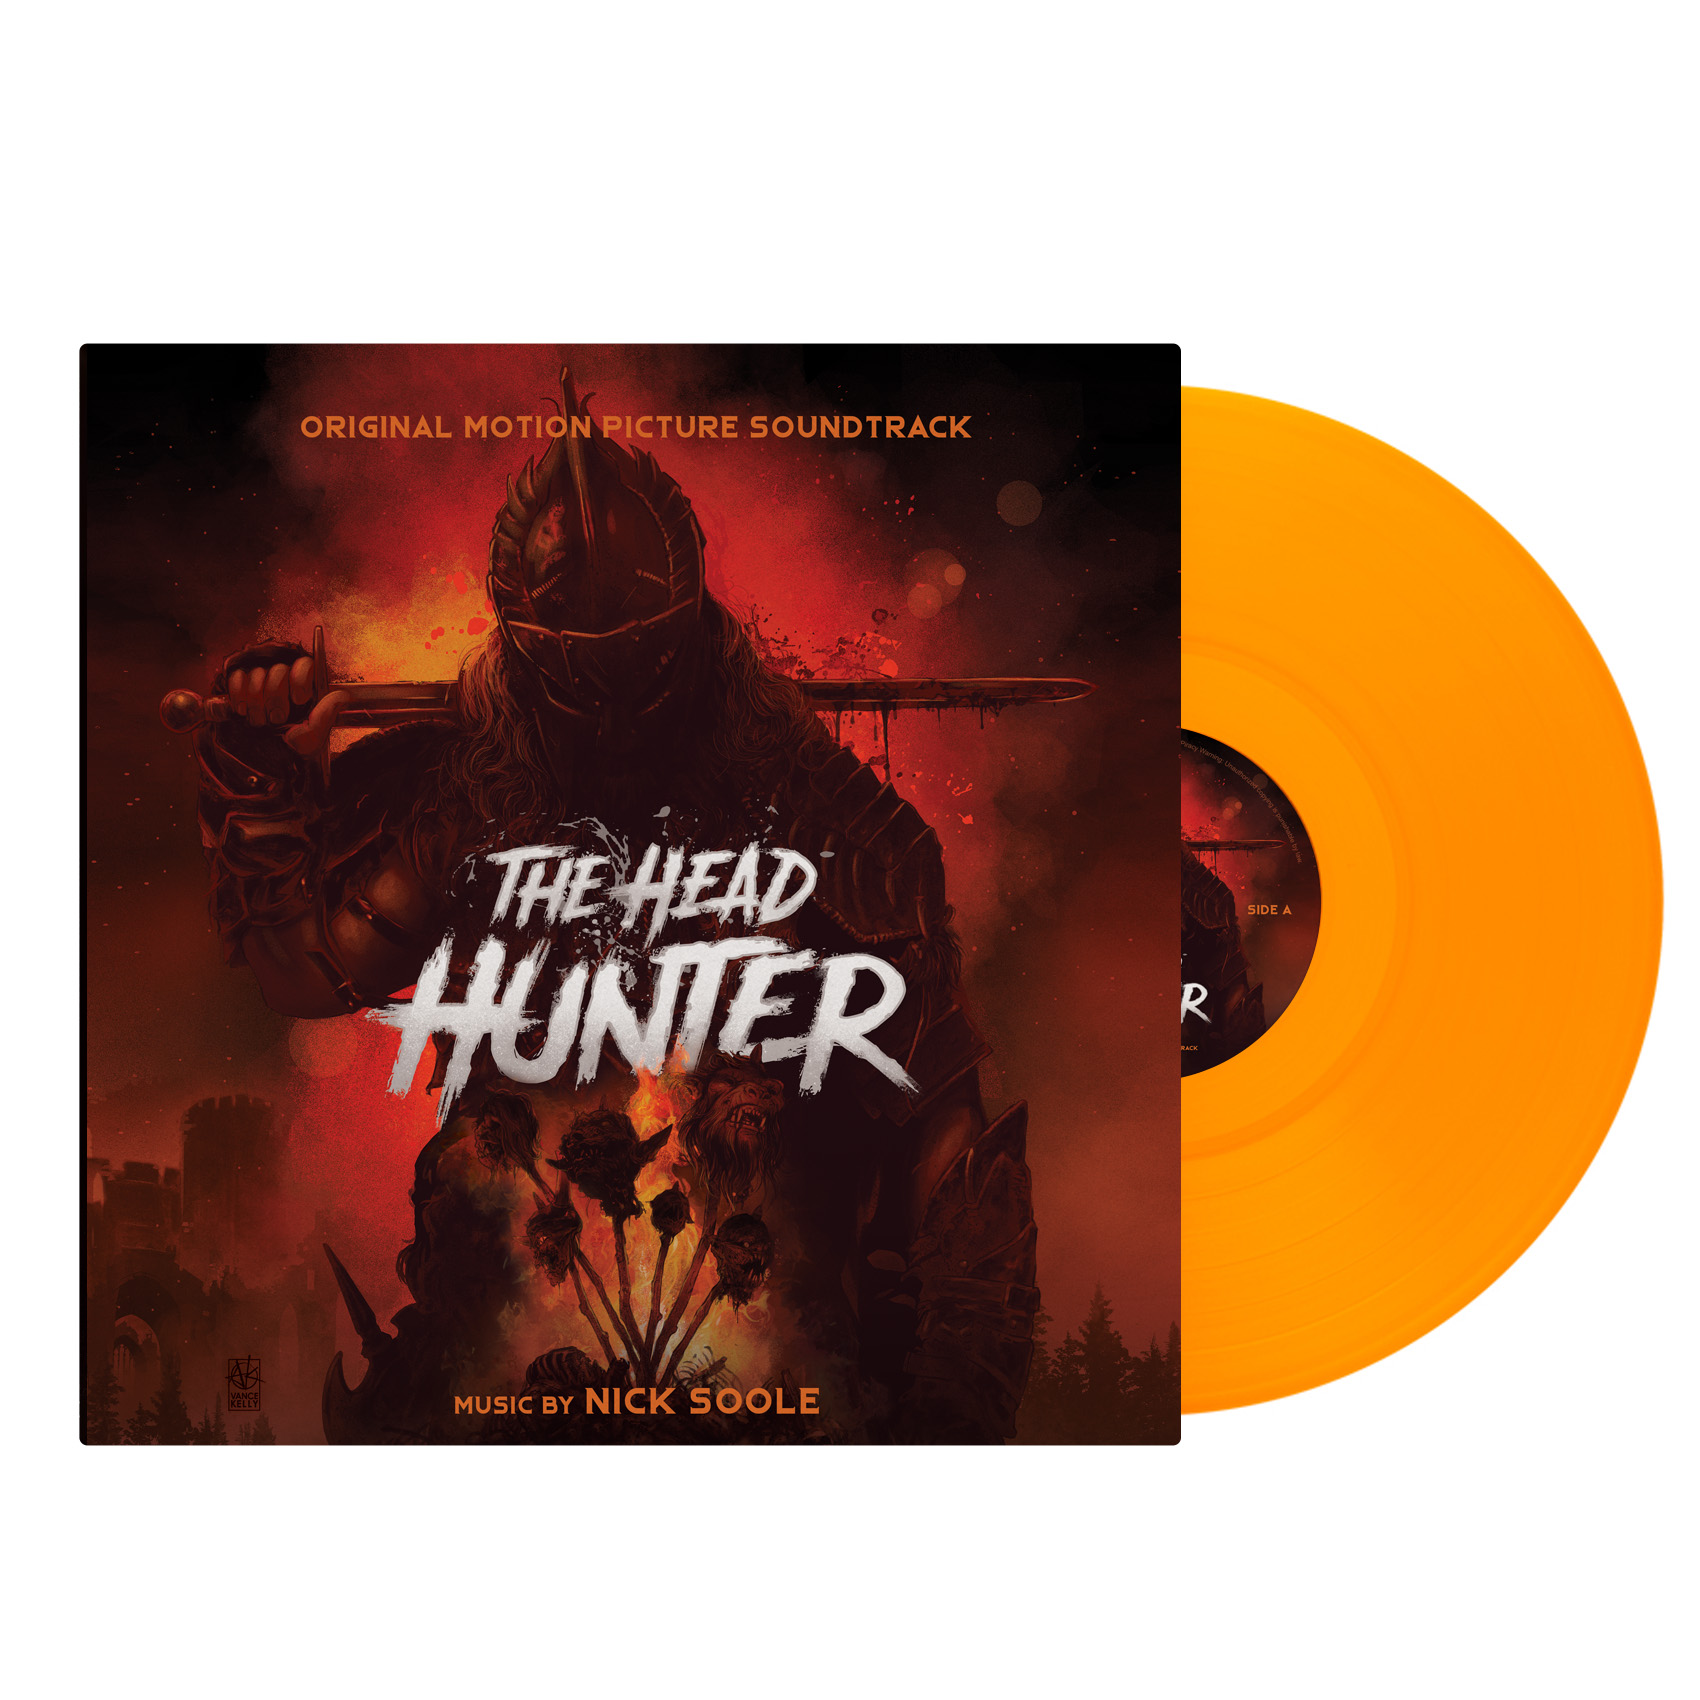 The Head Hunter - Original Motion Picture Soundtrack